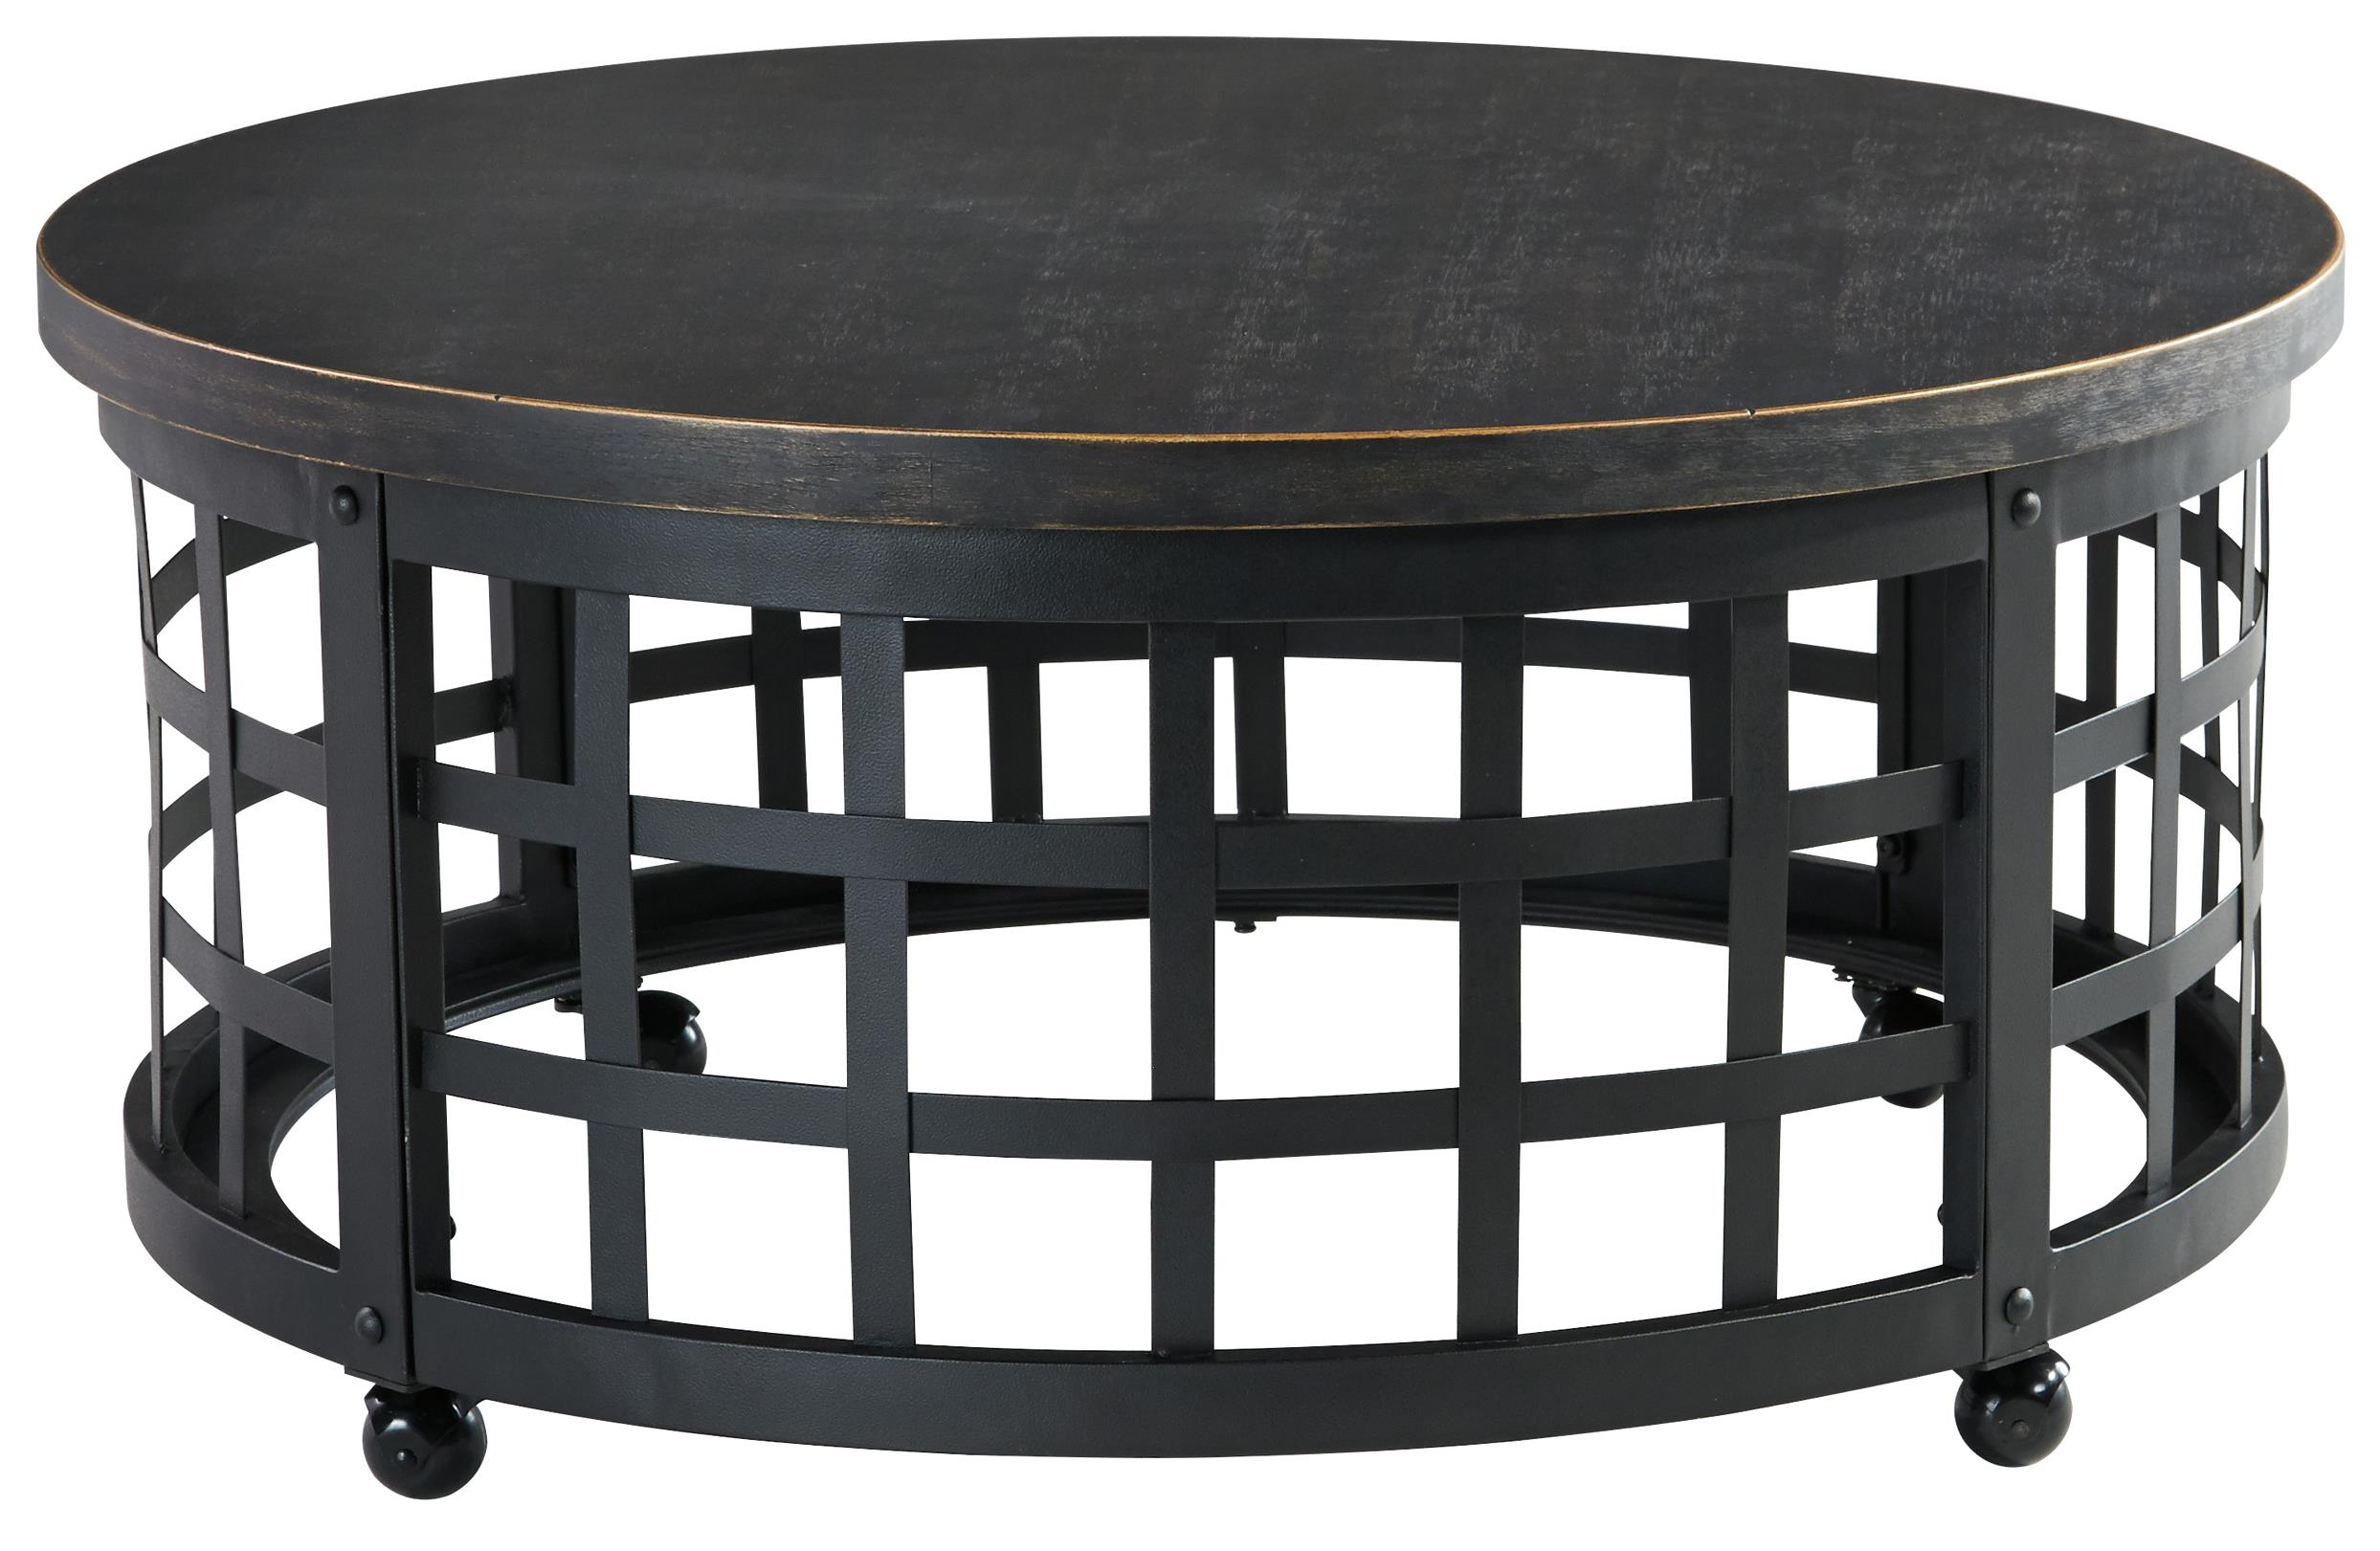 Signature Design By Ashley Marimon T746 8 Industrial Style Round Cocktail Table With Casters